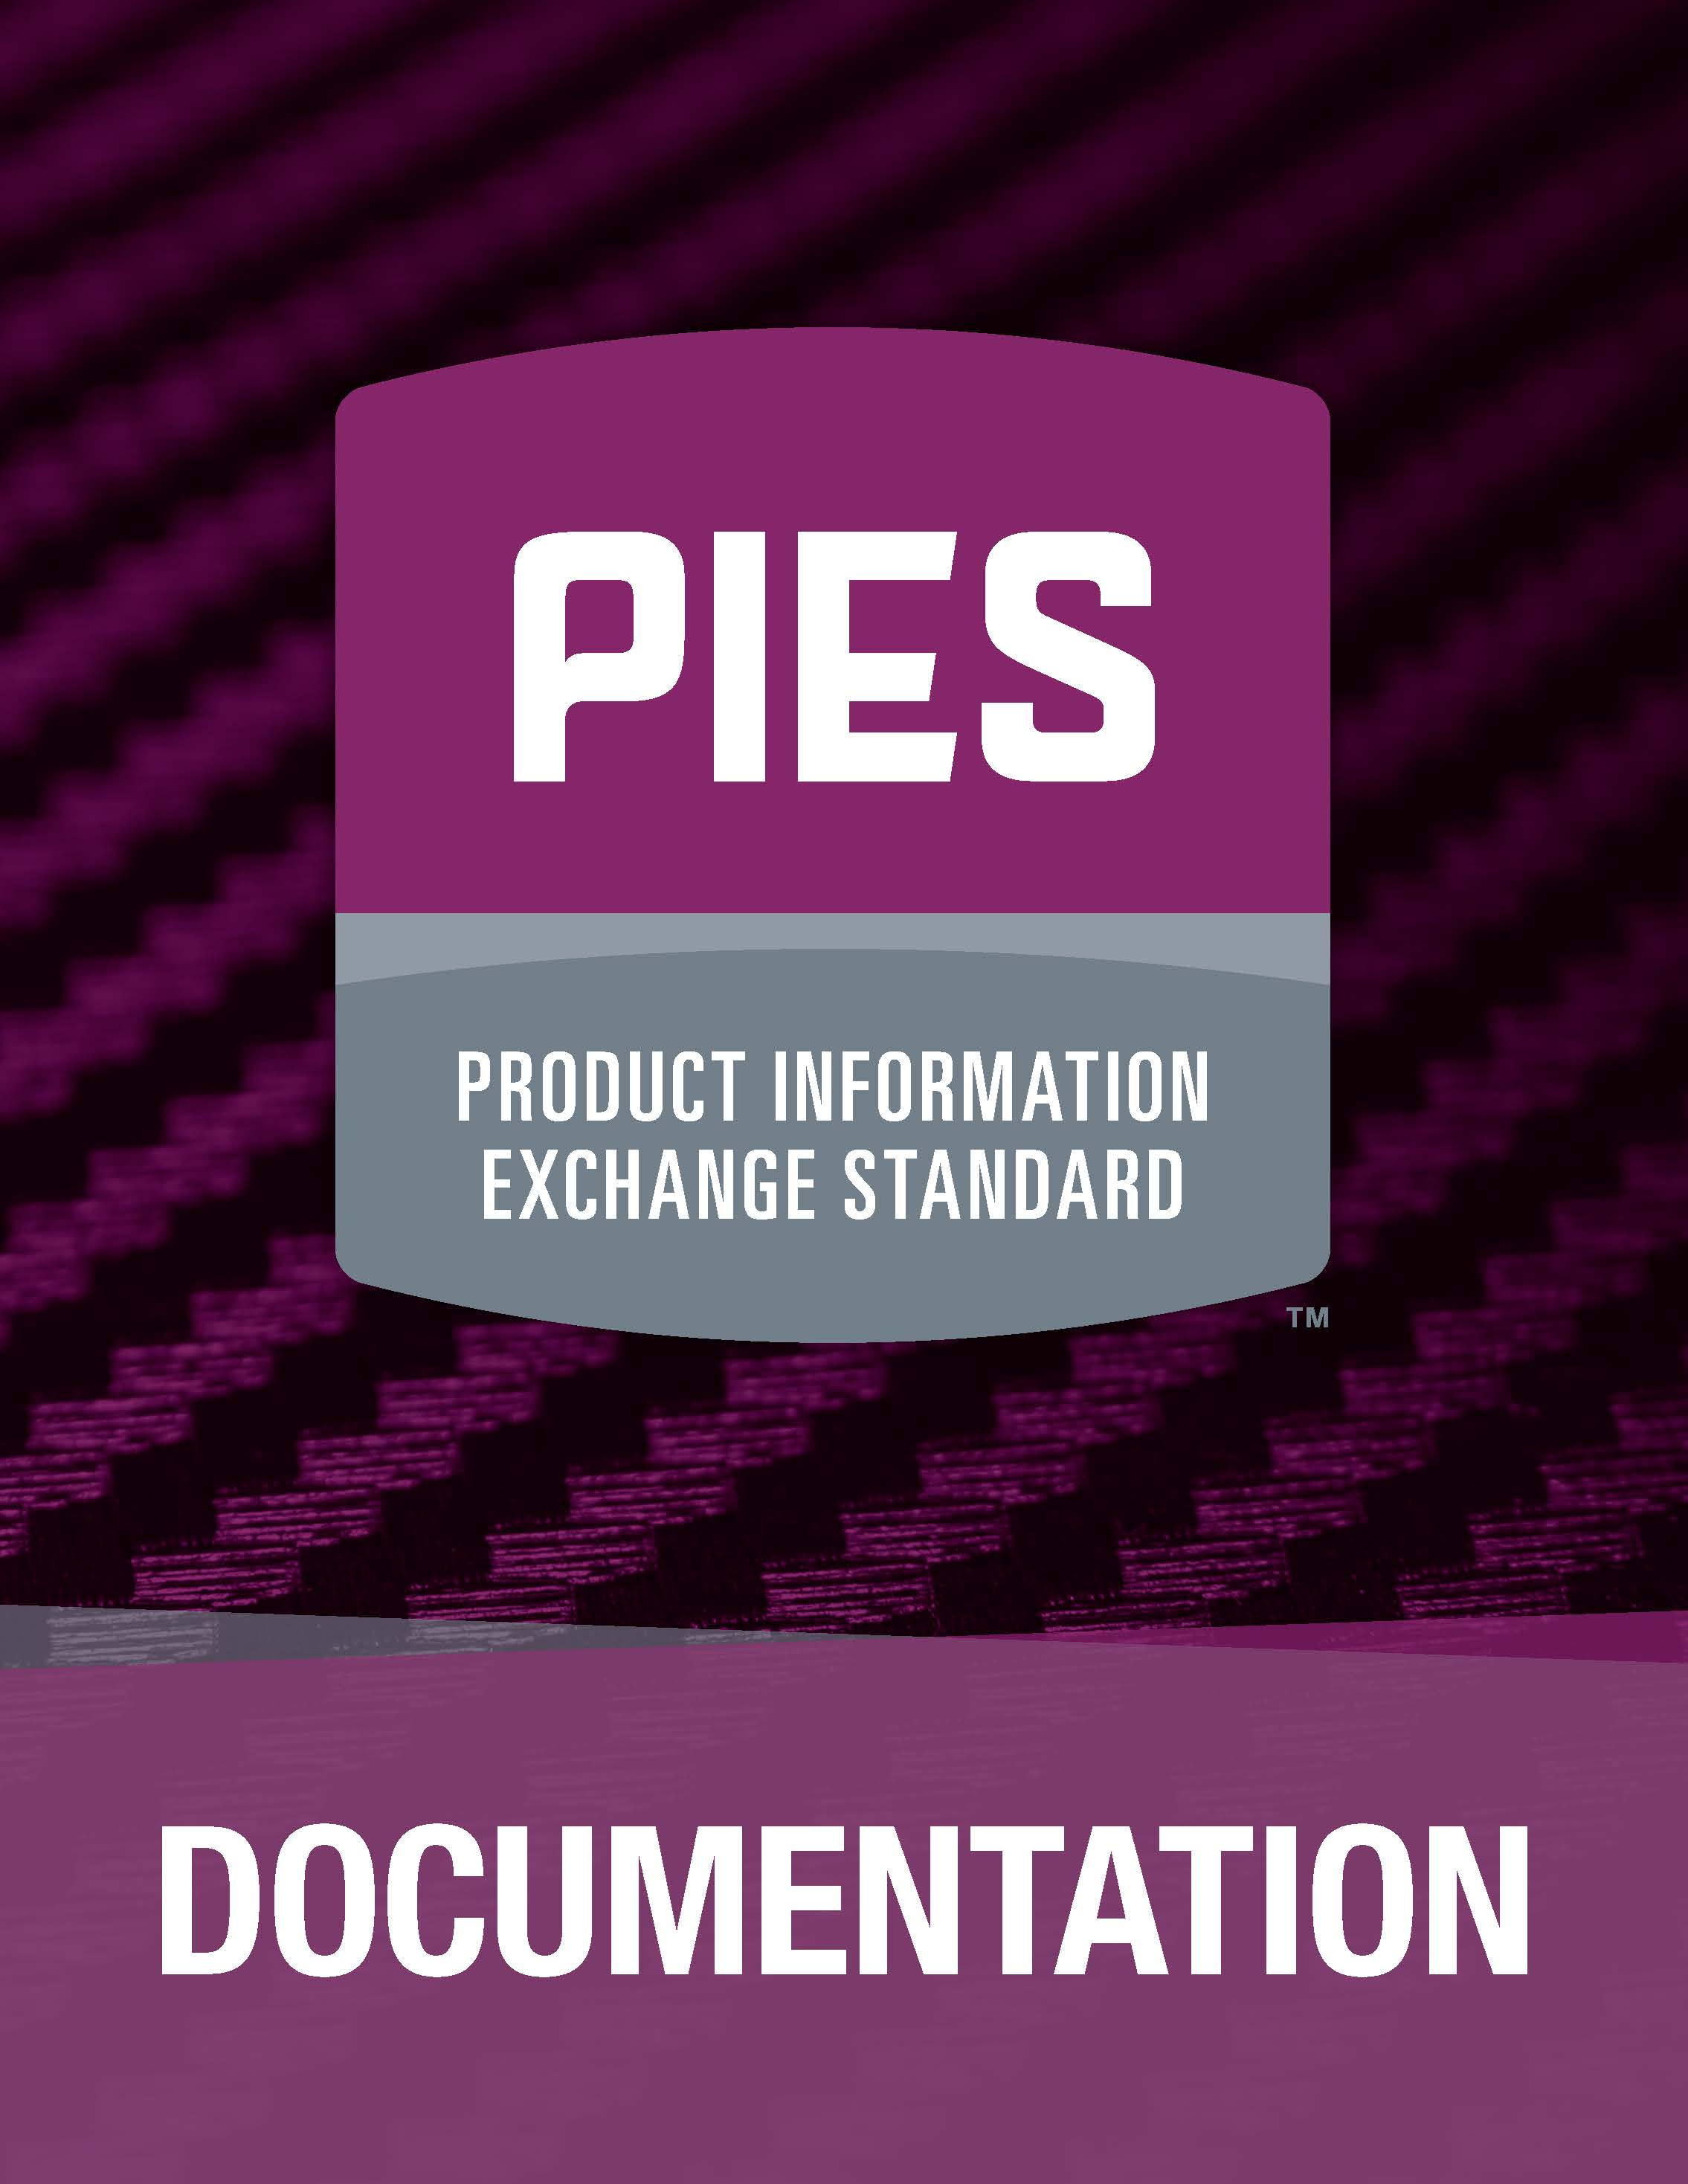 PIES 7.1 Documentation